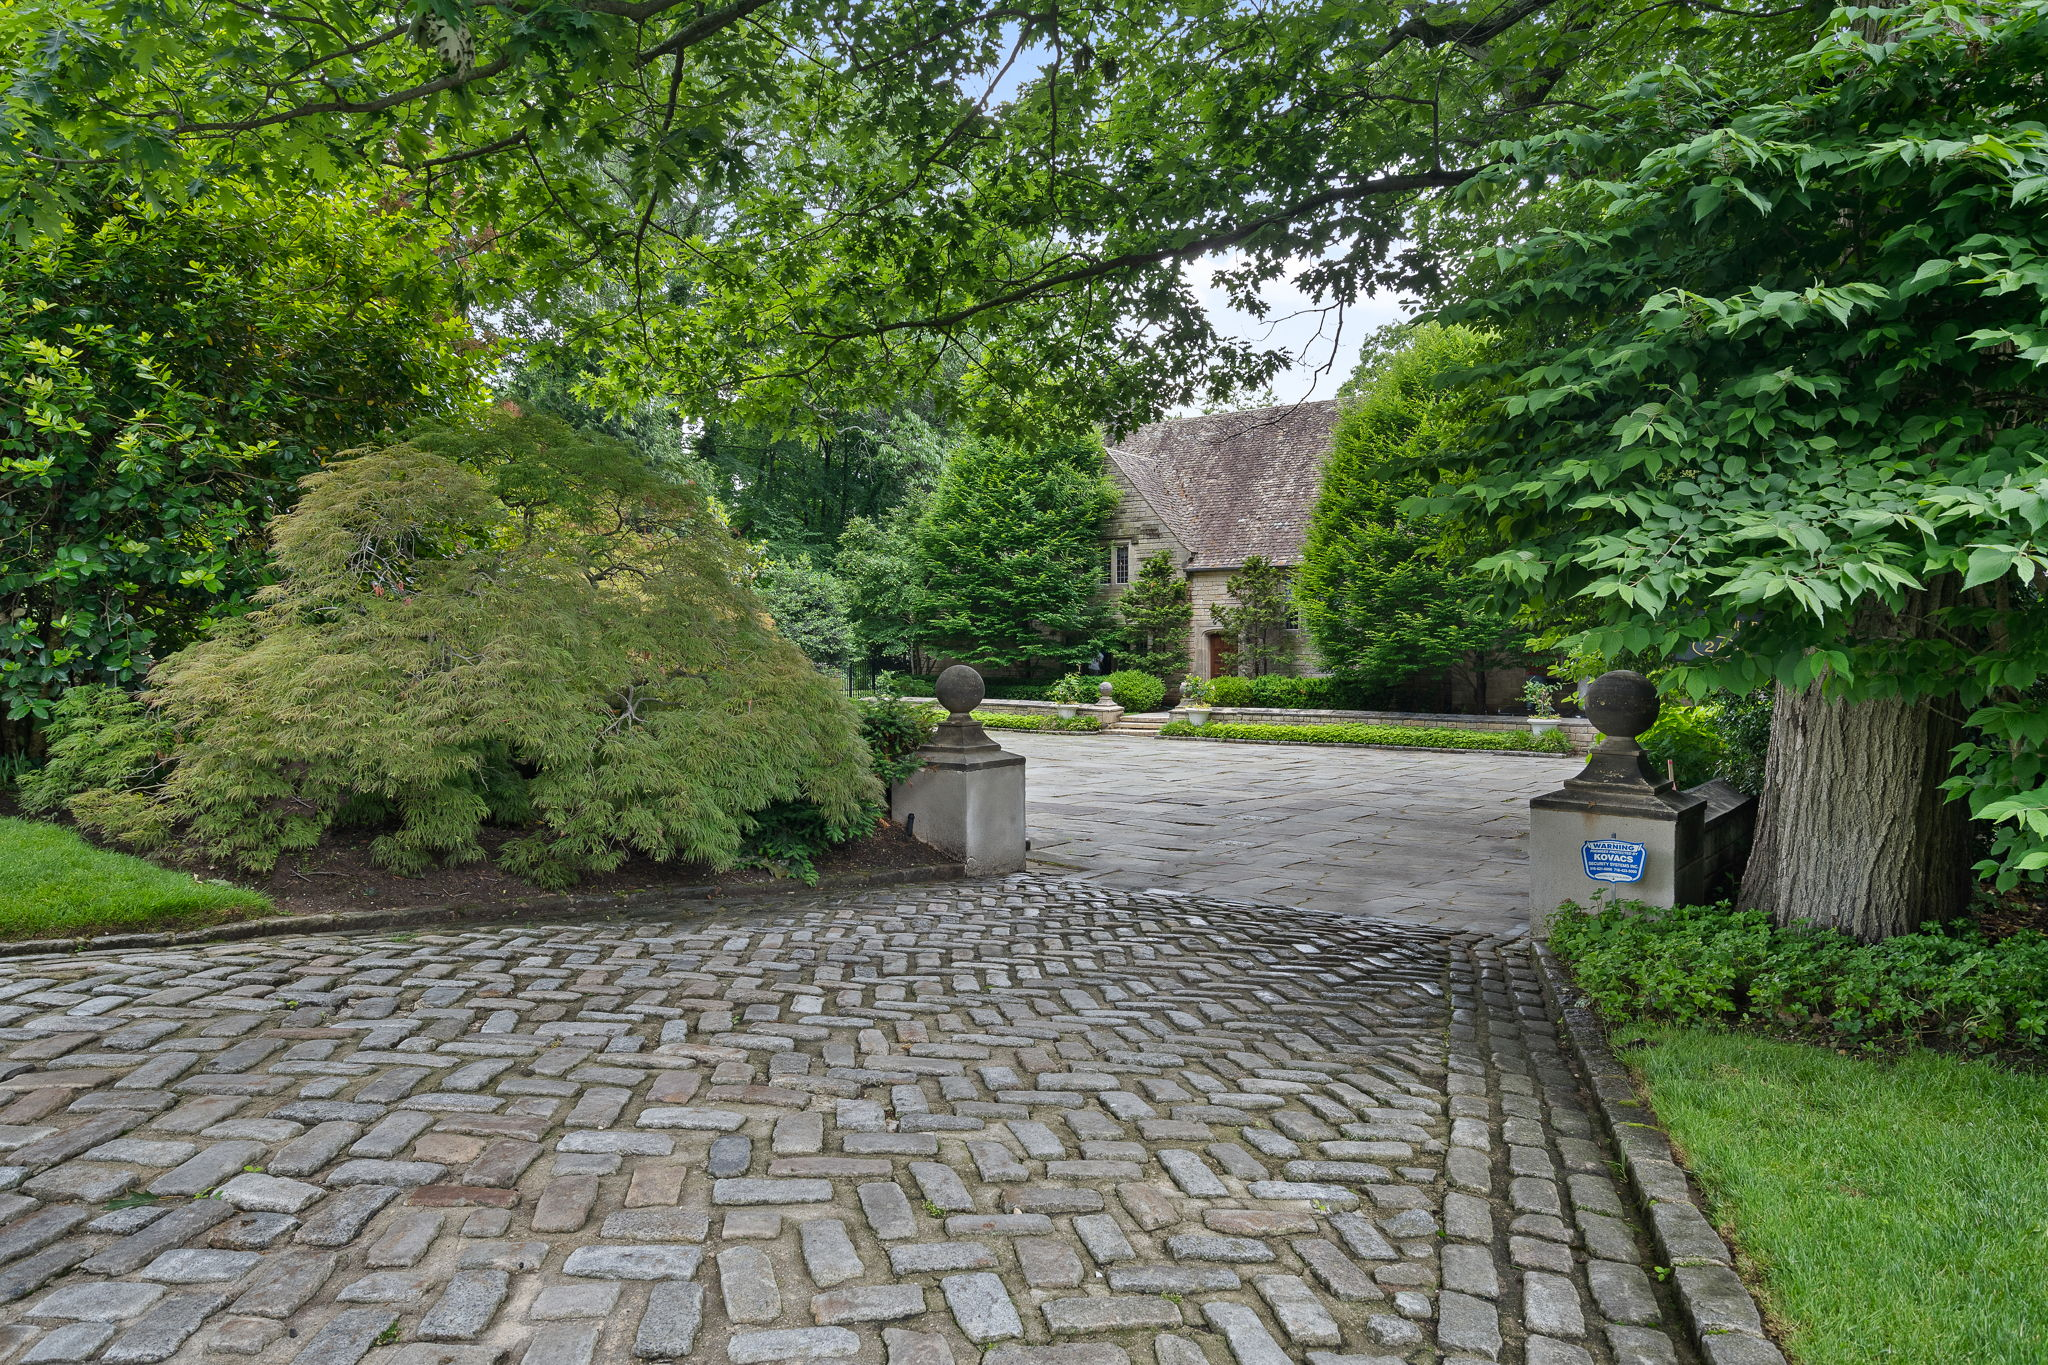 2a Melby Ln, East Hills, NY 11576, US